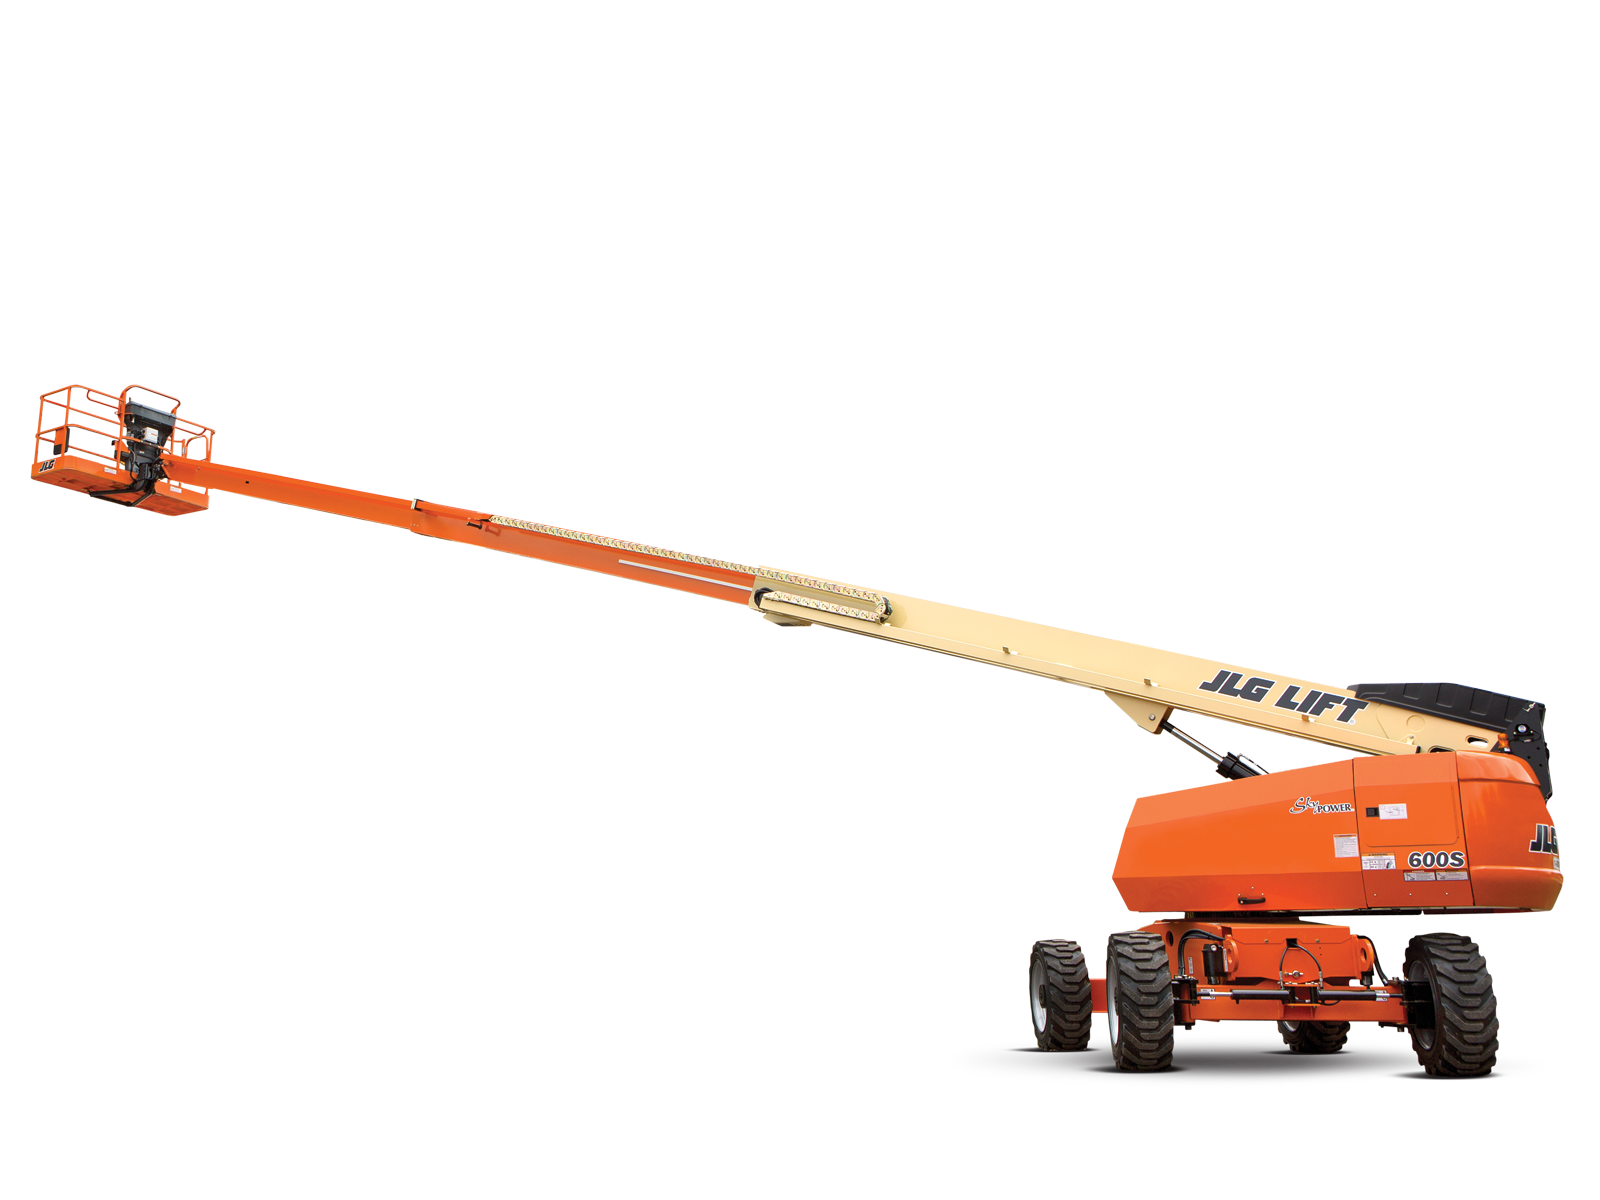 JLG 600S | Telescopic Boom Lift on Hire |  WESTERN INDIA SKY LIFTER